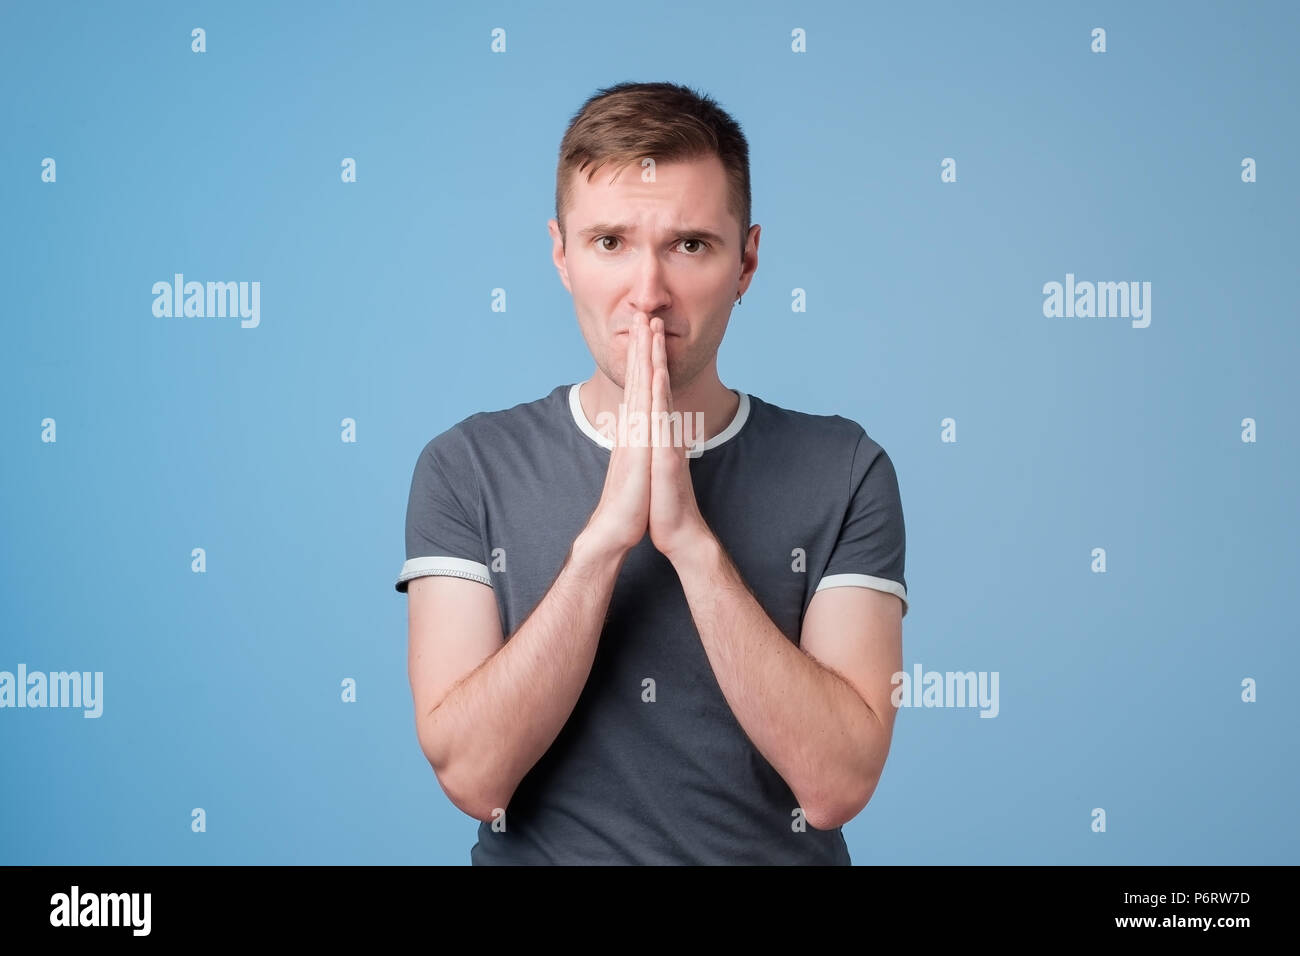 Handsome young man in blue t-shirt pressings palms together and looking at camera, begging for forgiveness - Stock Image